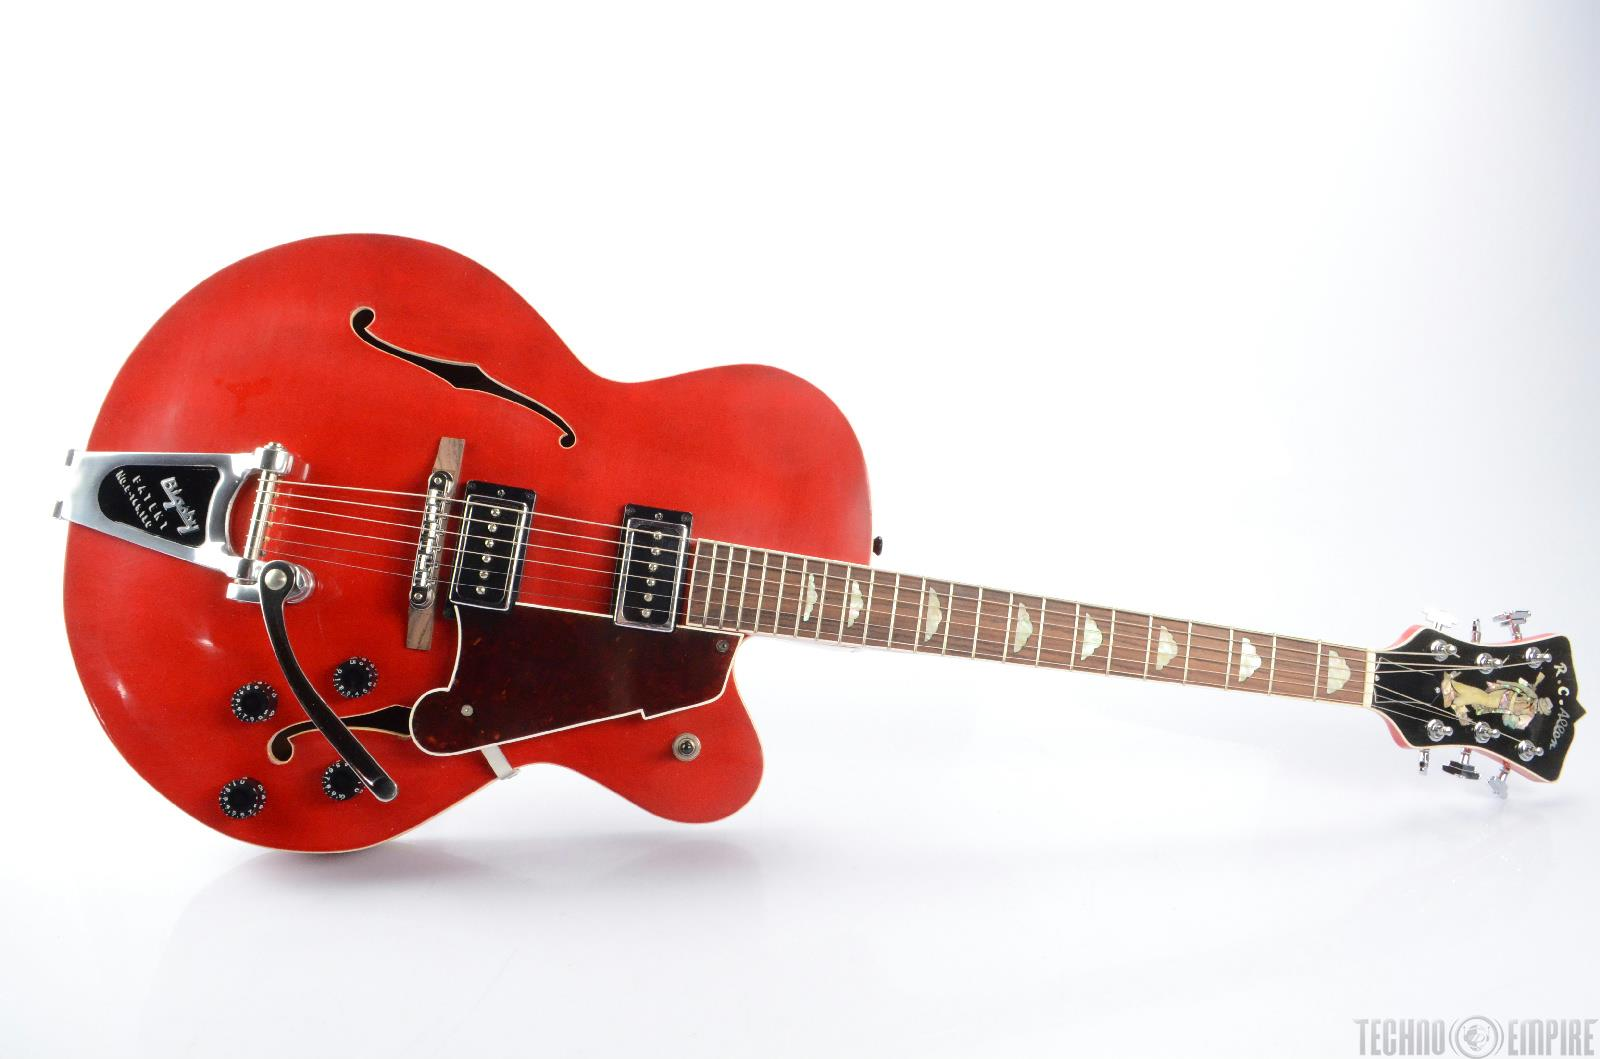 R.C. Allen Uncle Chester Red Hollowbody Electric Guitar Bigsby w/ Case #23060